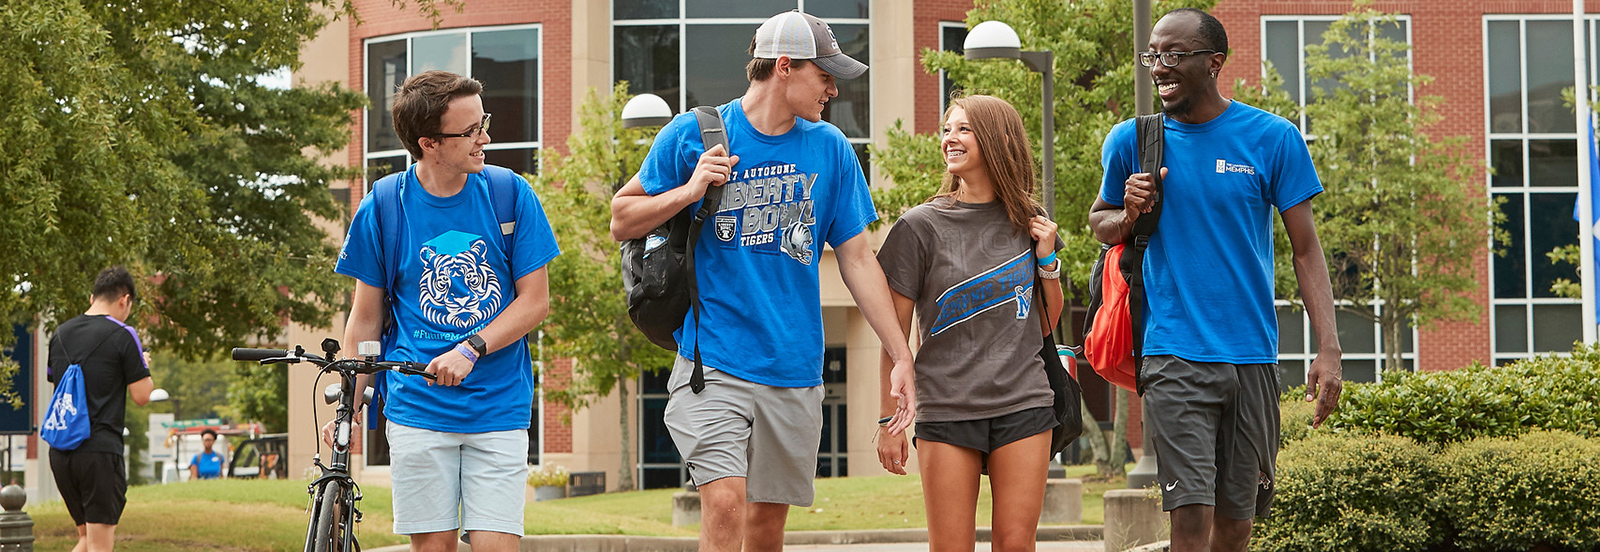 4 students walking on campus